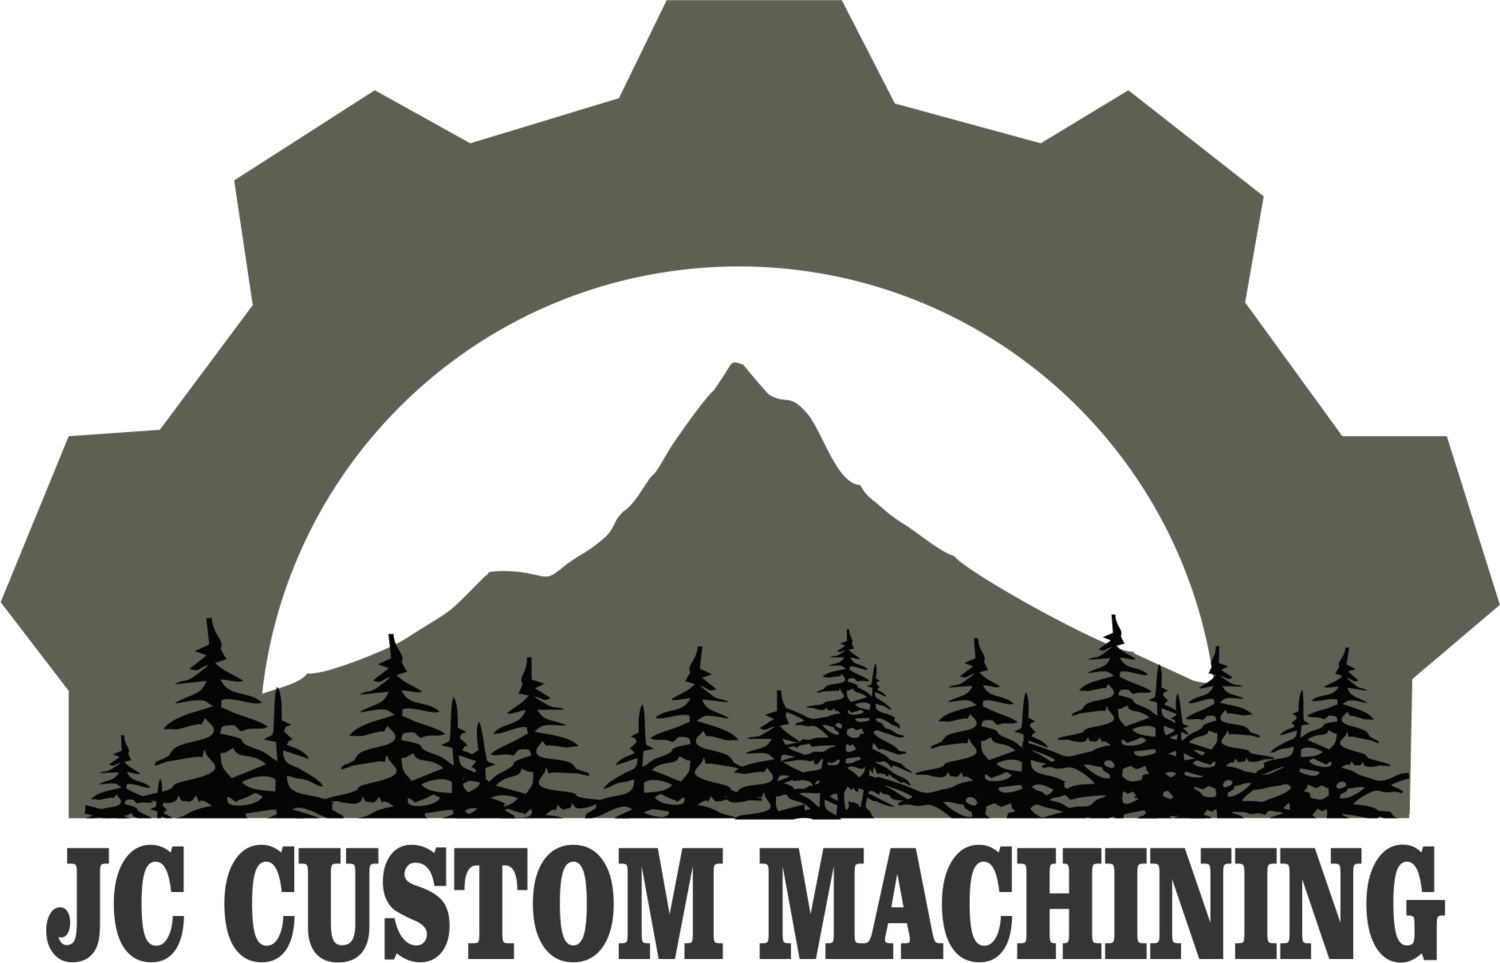 J.C. Custom Machining & Design